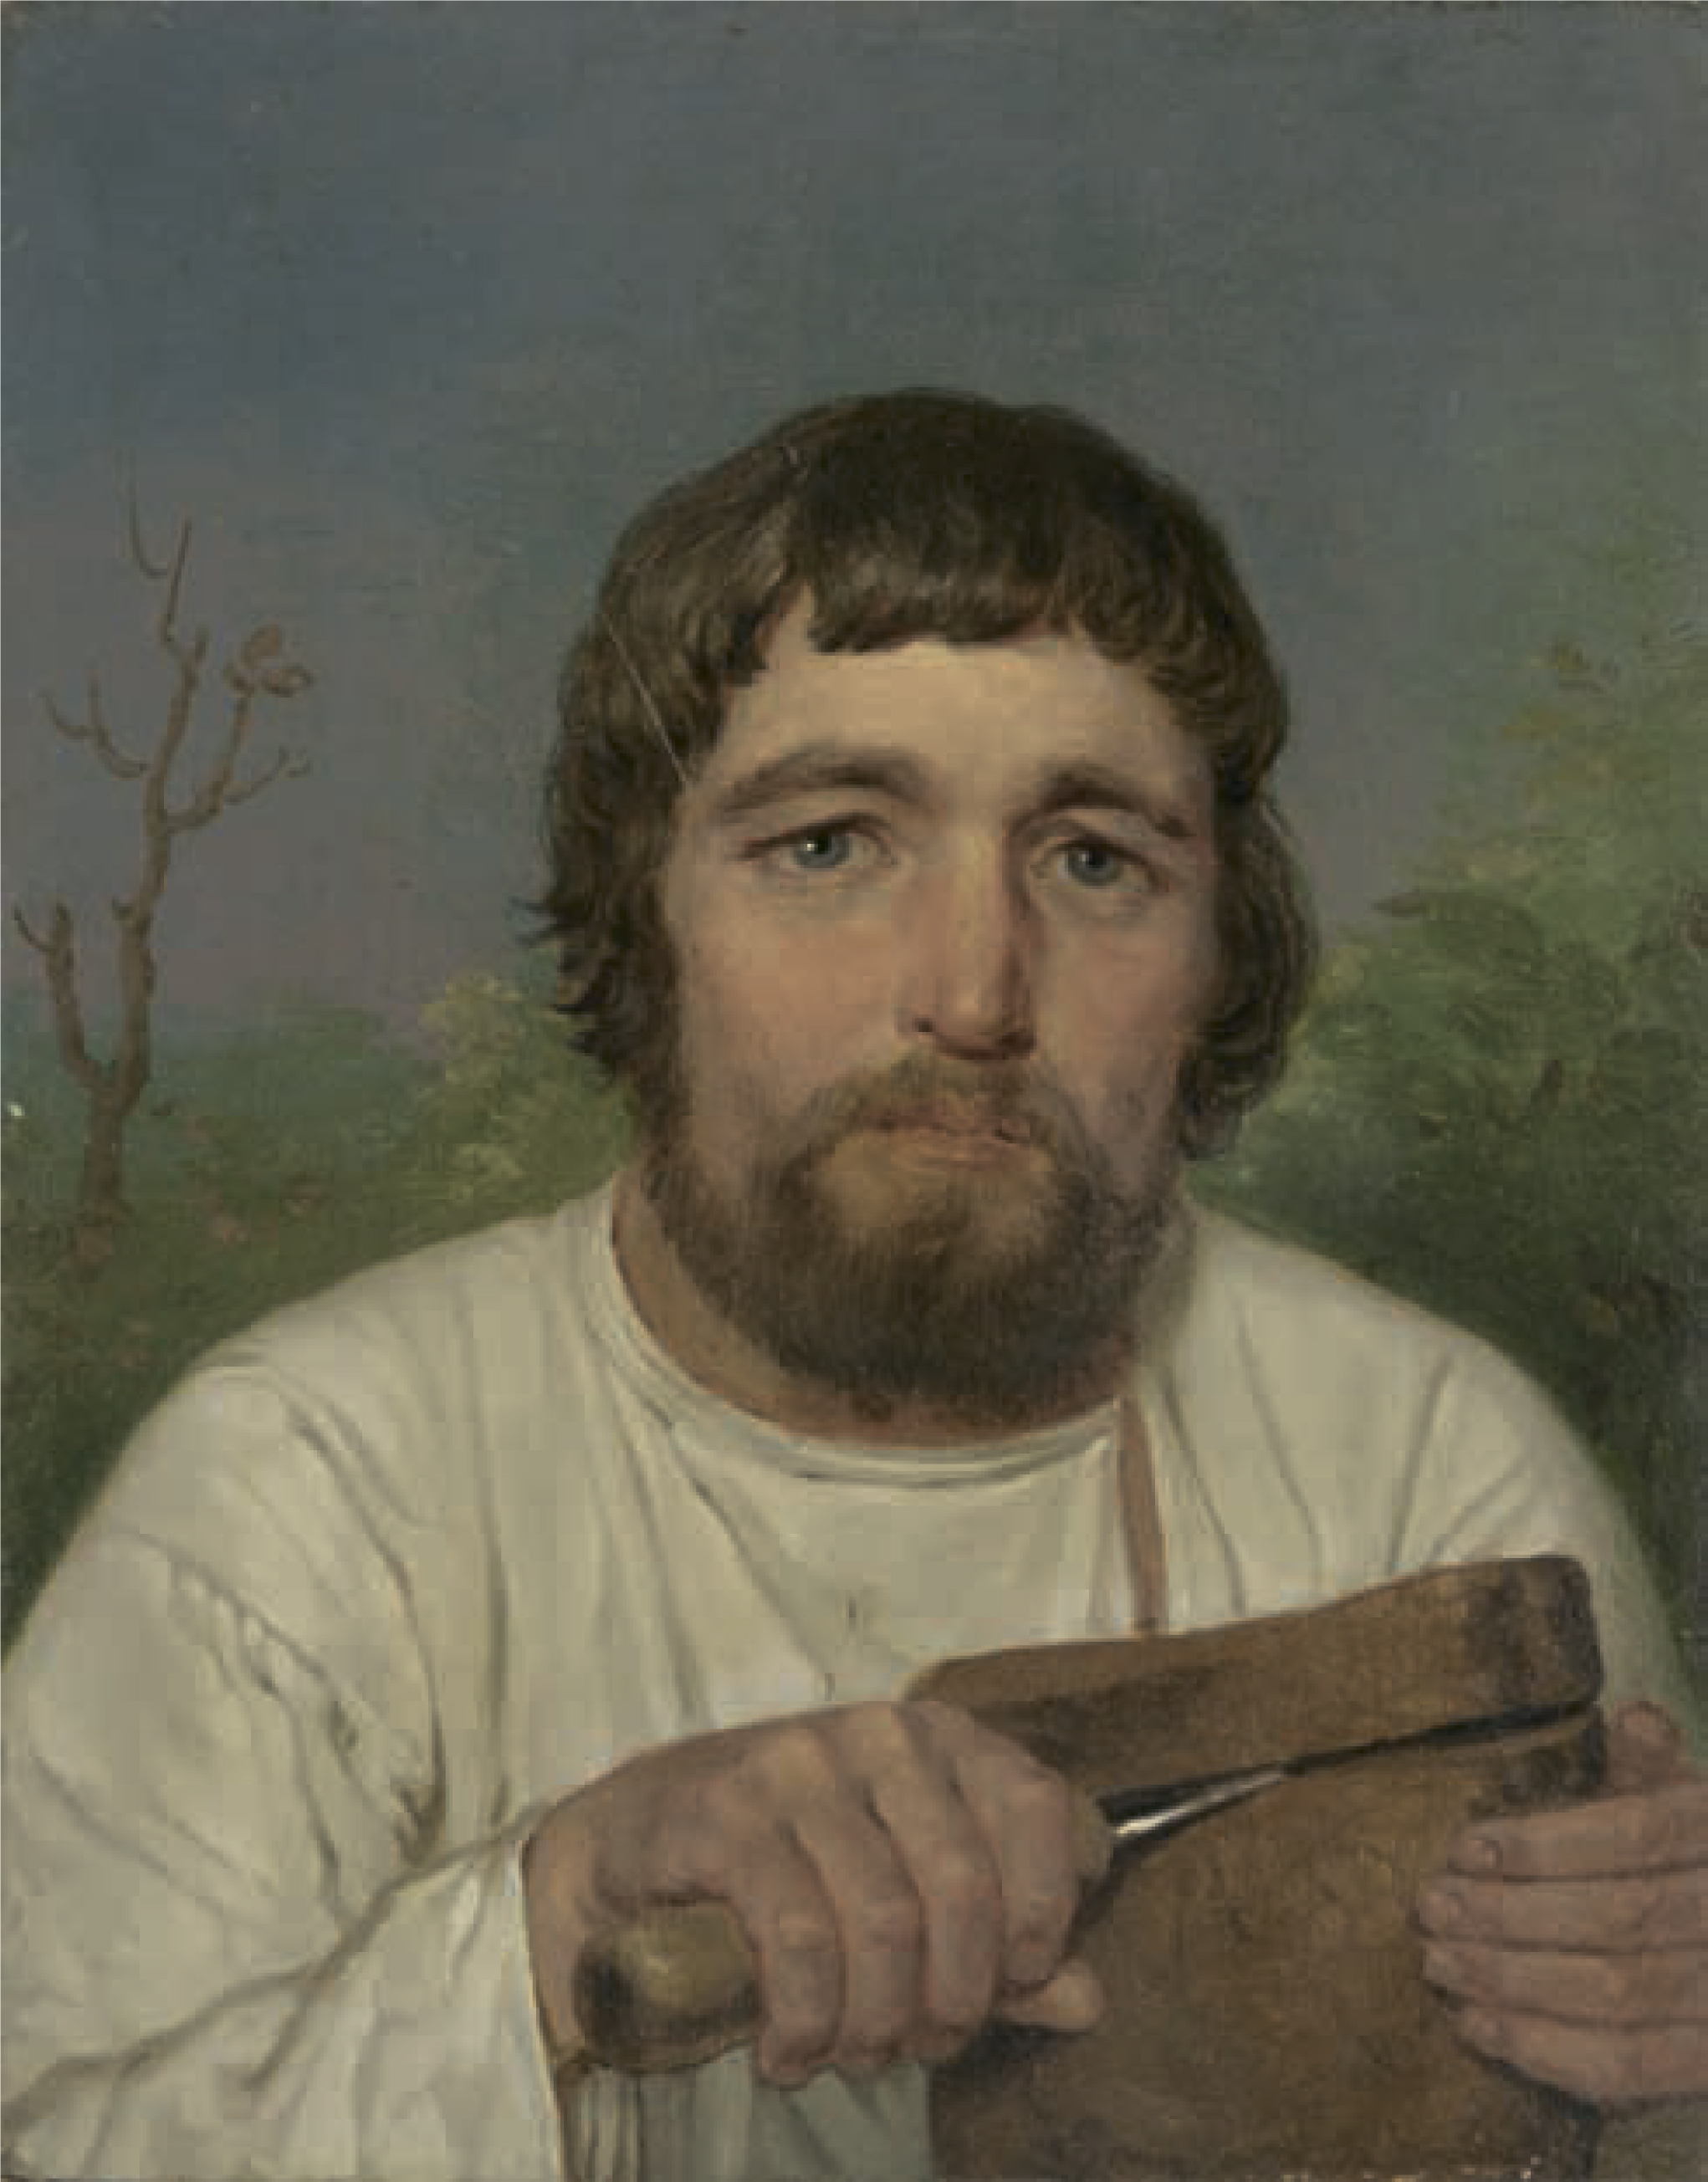 https://upload.wikimedia.org/wikipedia/commons/d/d1/Peasant_with_bread_by_Venetsianov_%281820s%2C_Russian_museum%29.jpg